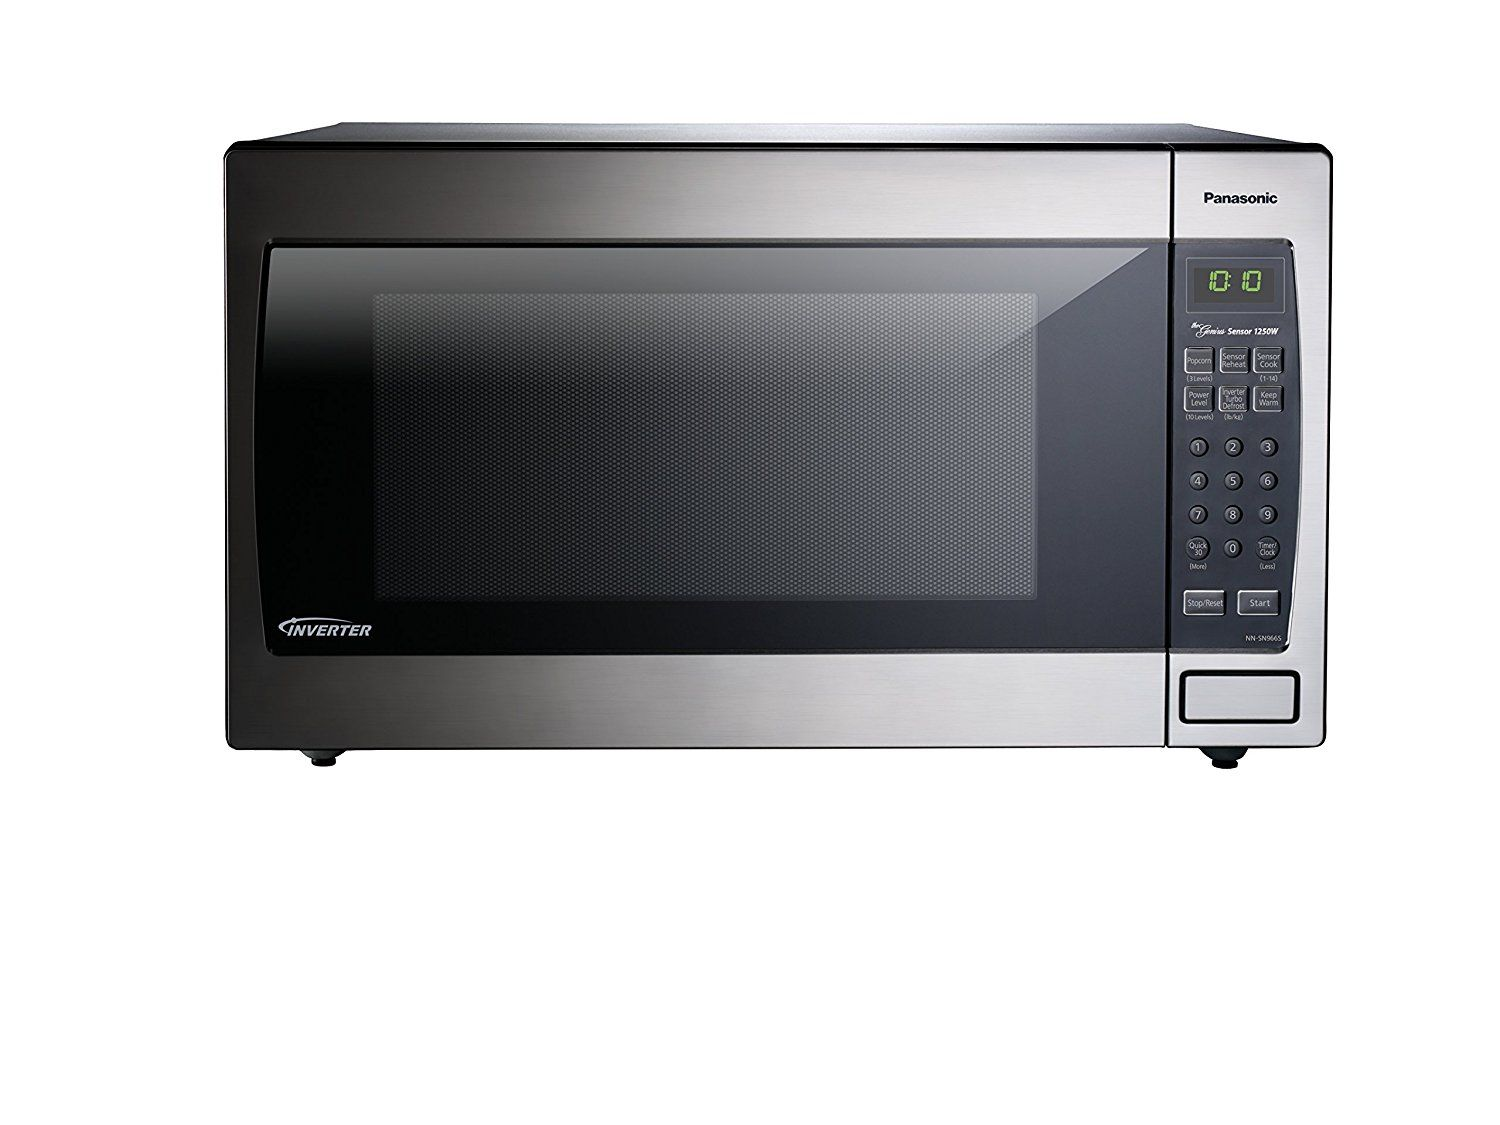 Panasonic Nn Sn966s Countertop Built In Microwave With Inverter